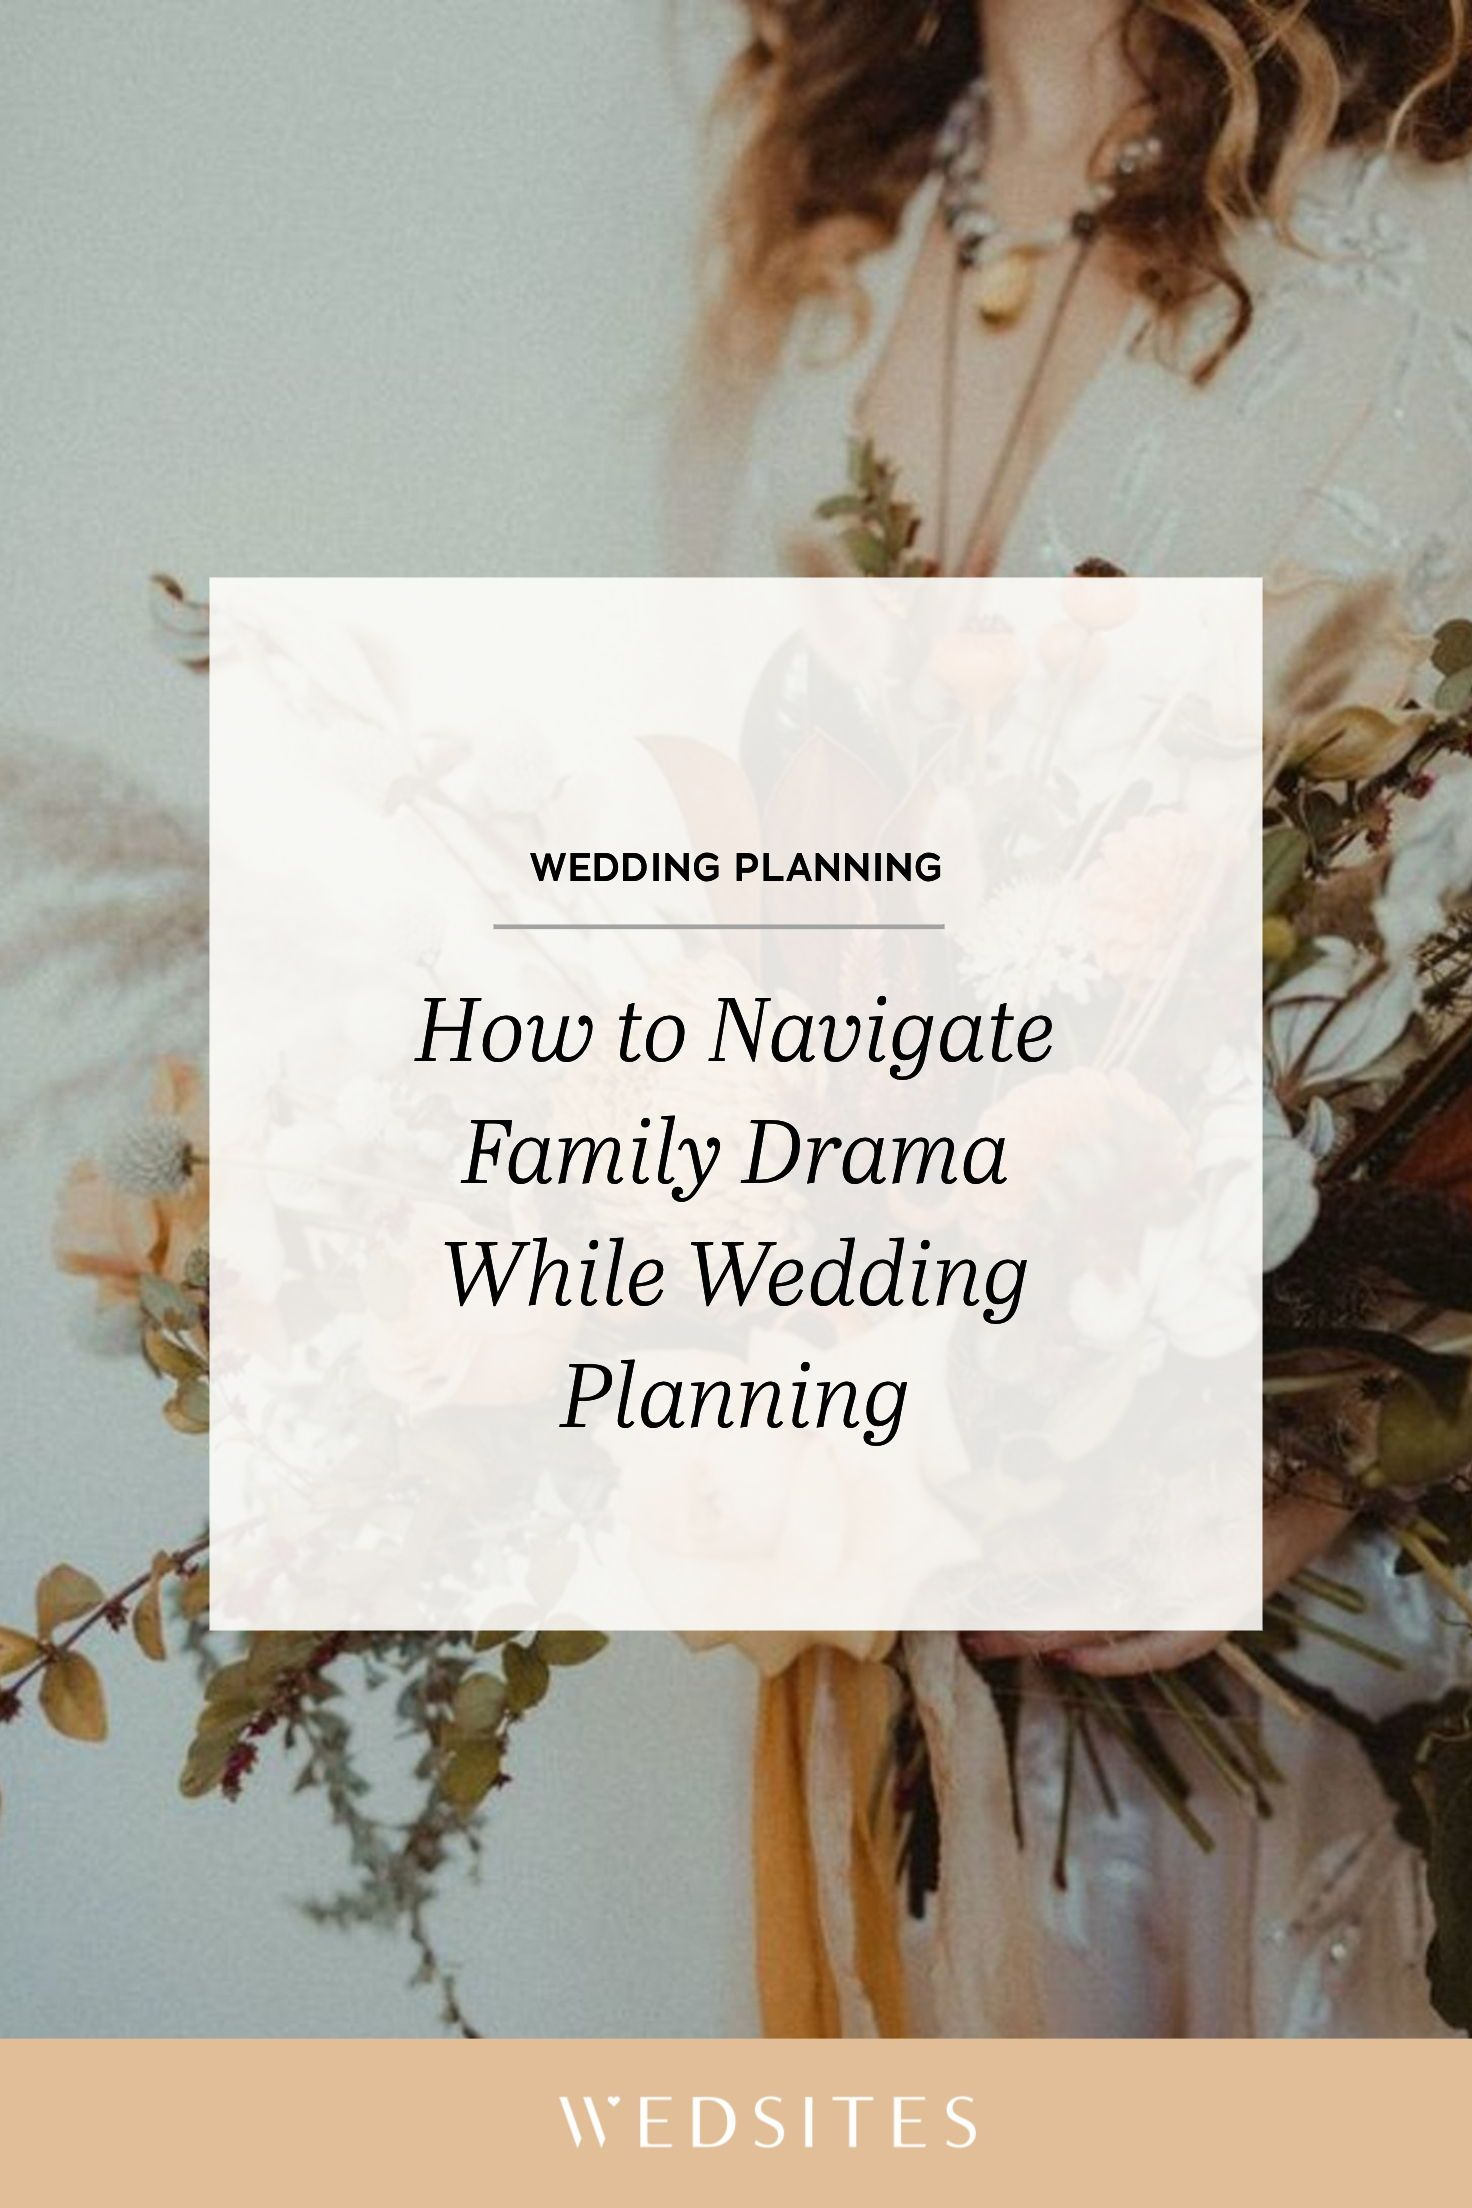 How to Navigate Family Drama While Wedding Planning